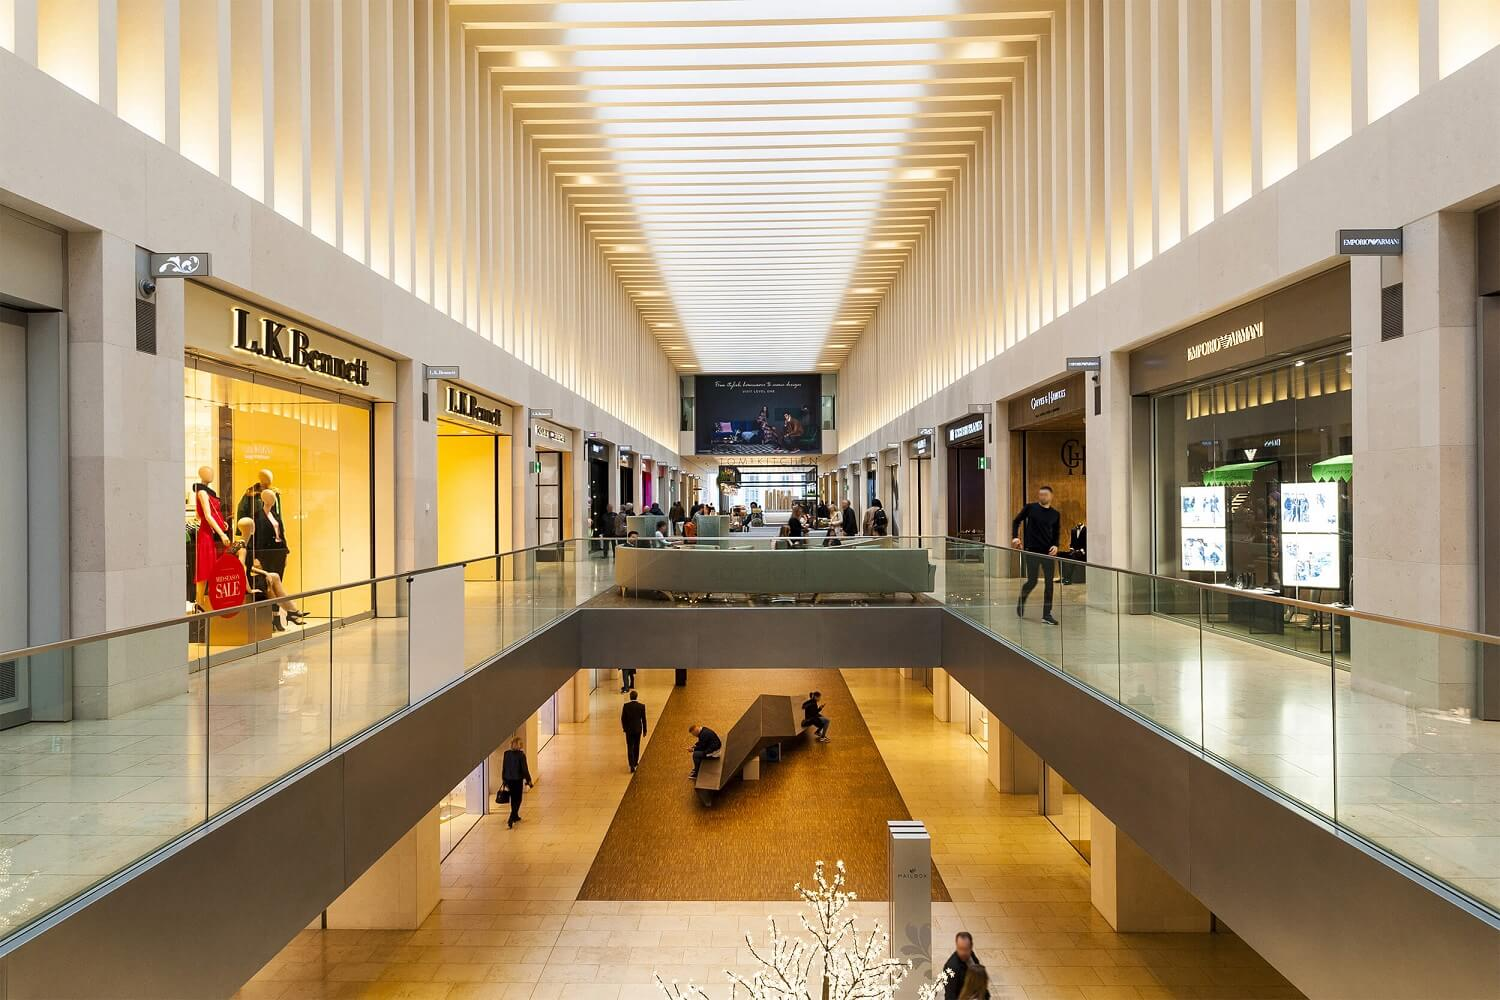 Limestone Moleanos interior cladding in a Luxuous Shopping Mall in London, UK supplied by LSI Stone